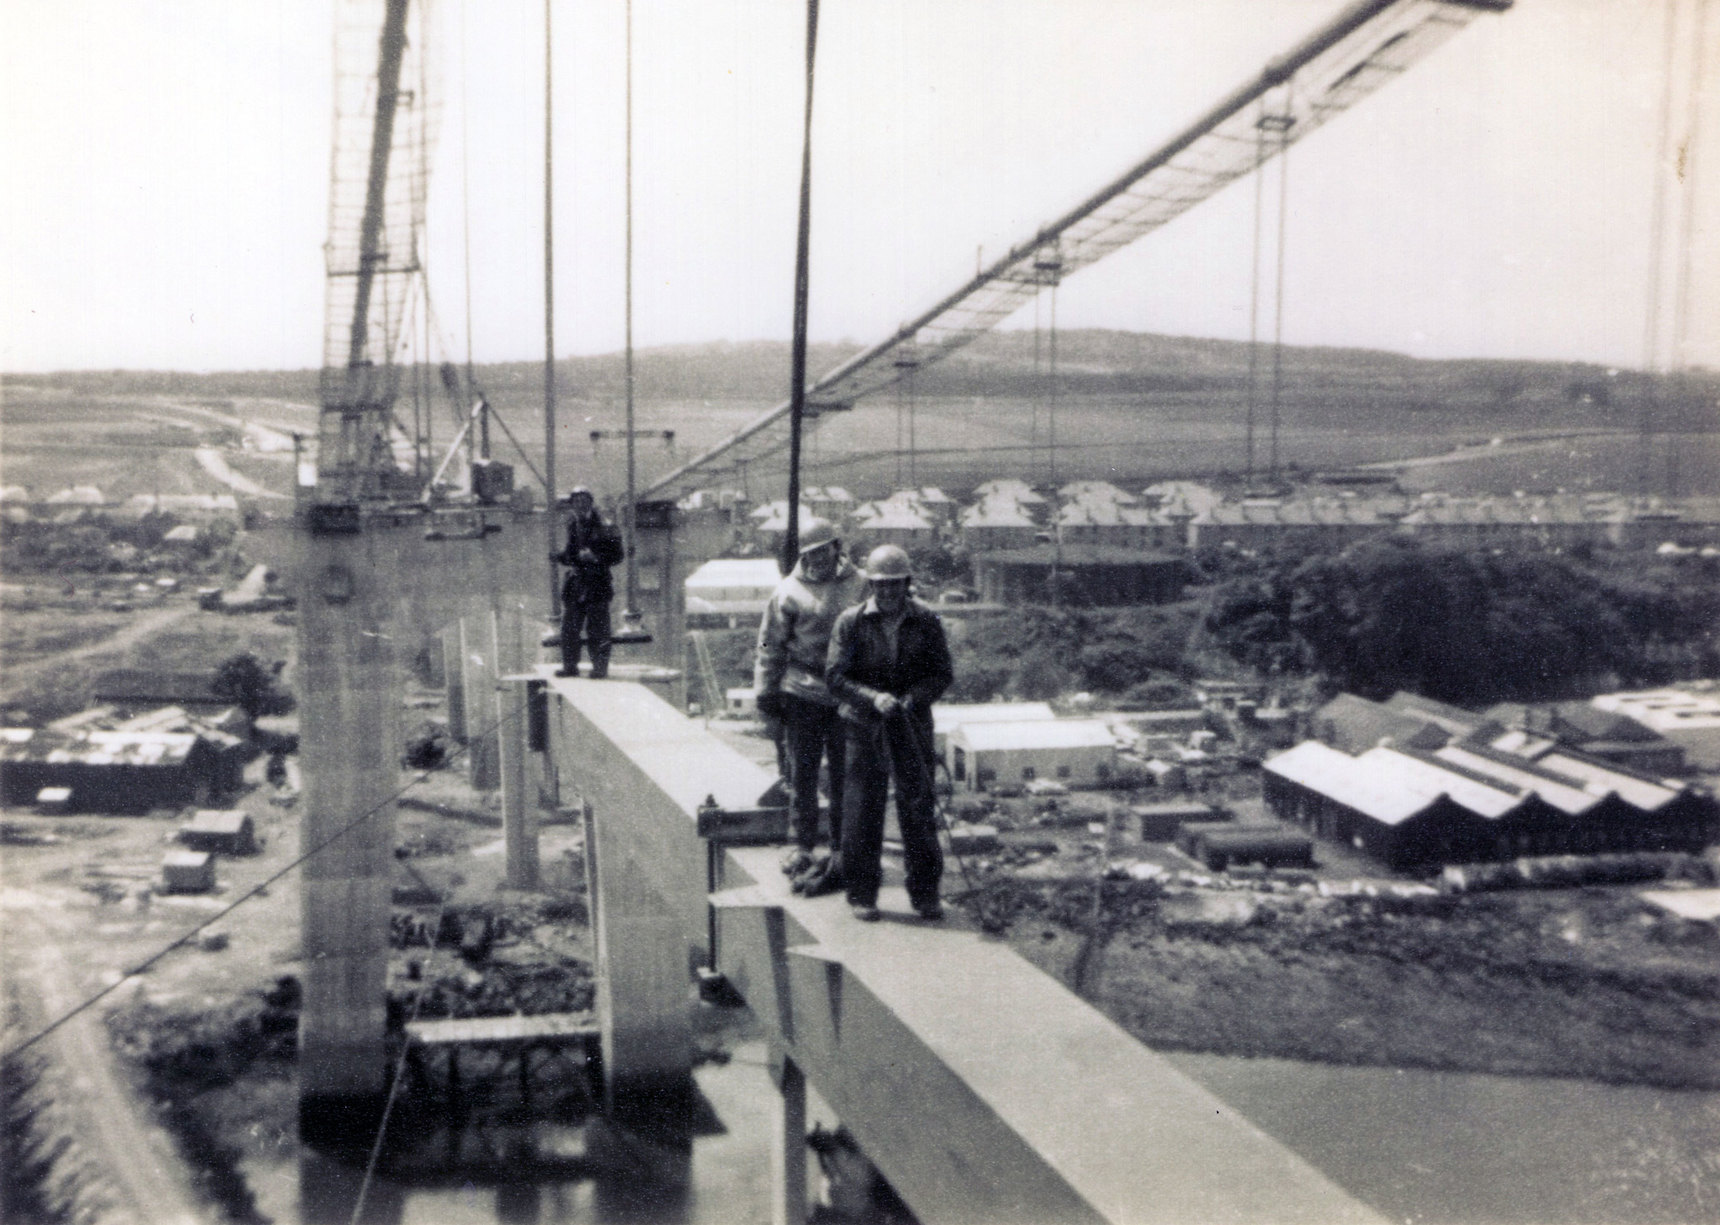 Construction Workers On Part Of Deck Of Forth Road Bridge c.1962